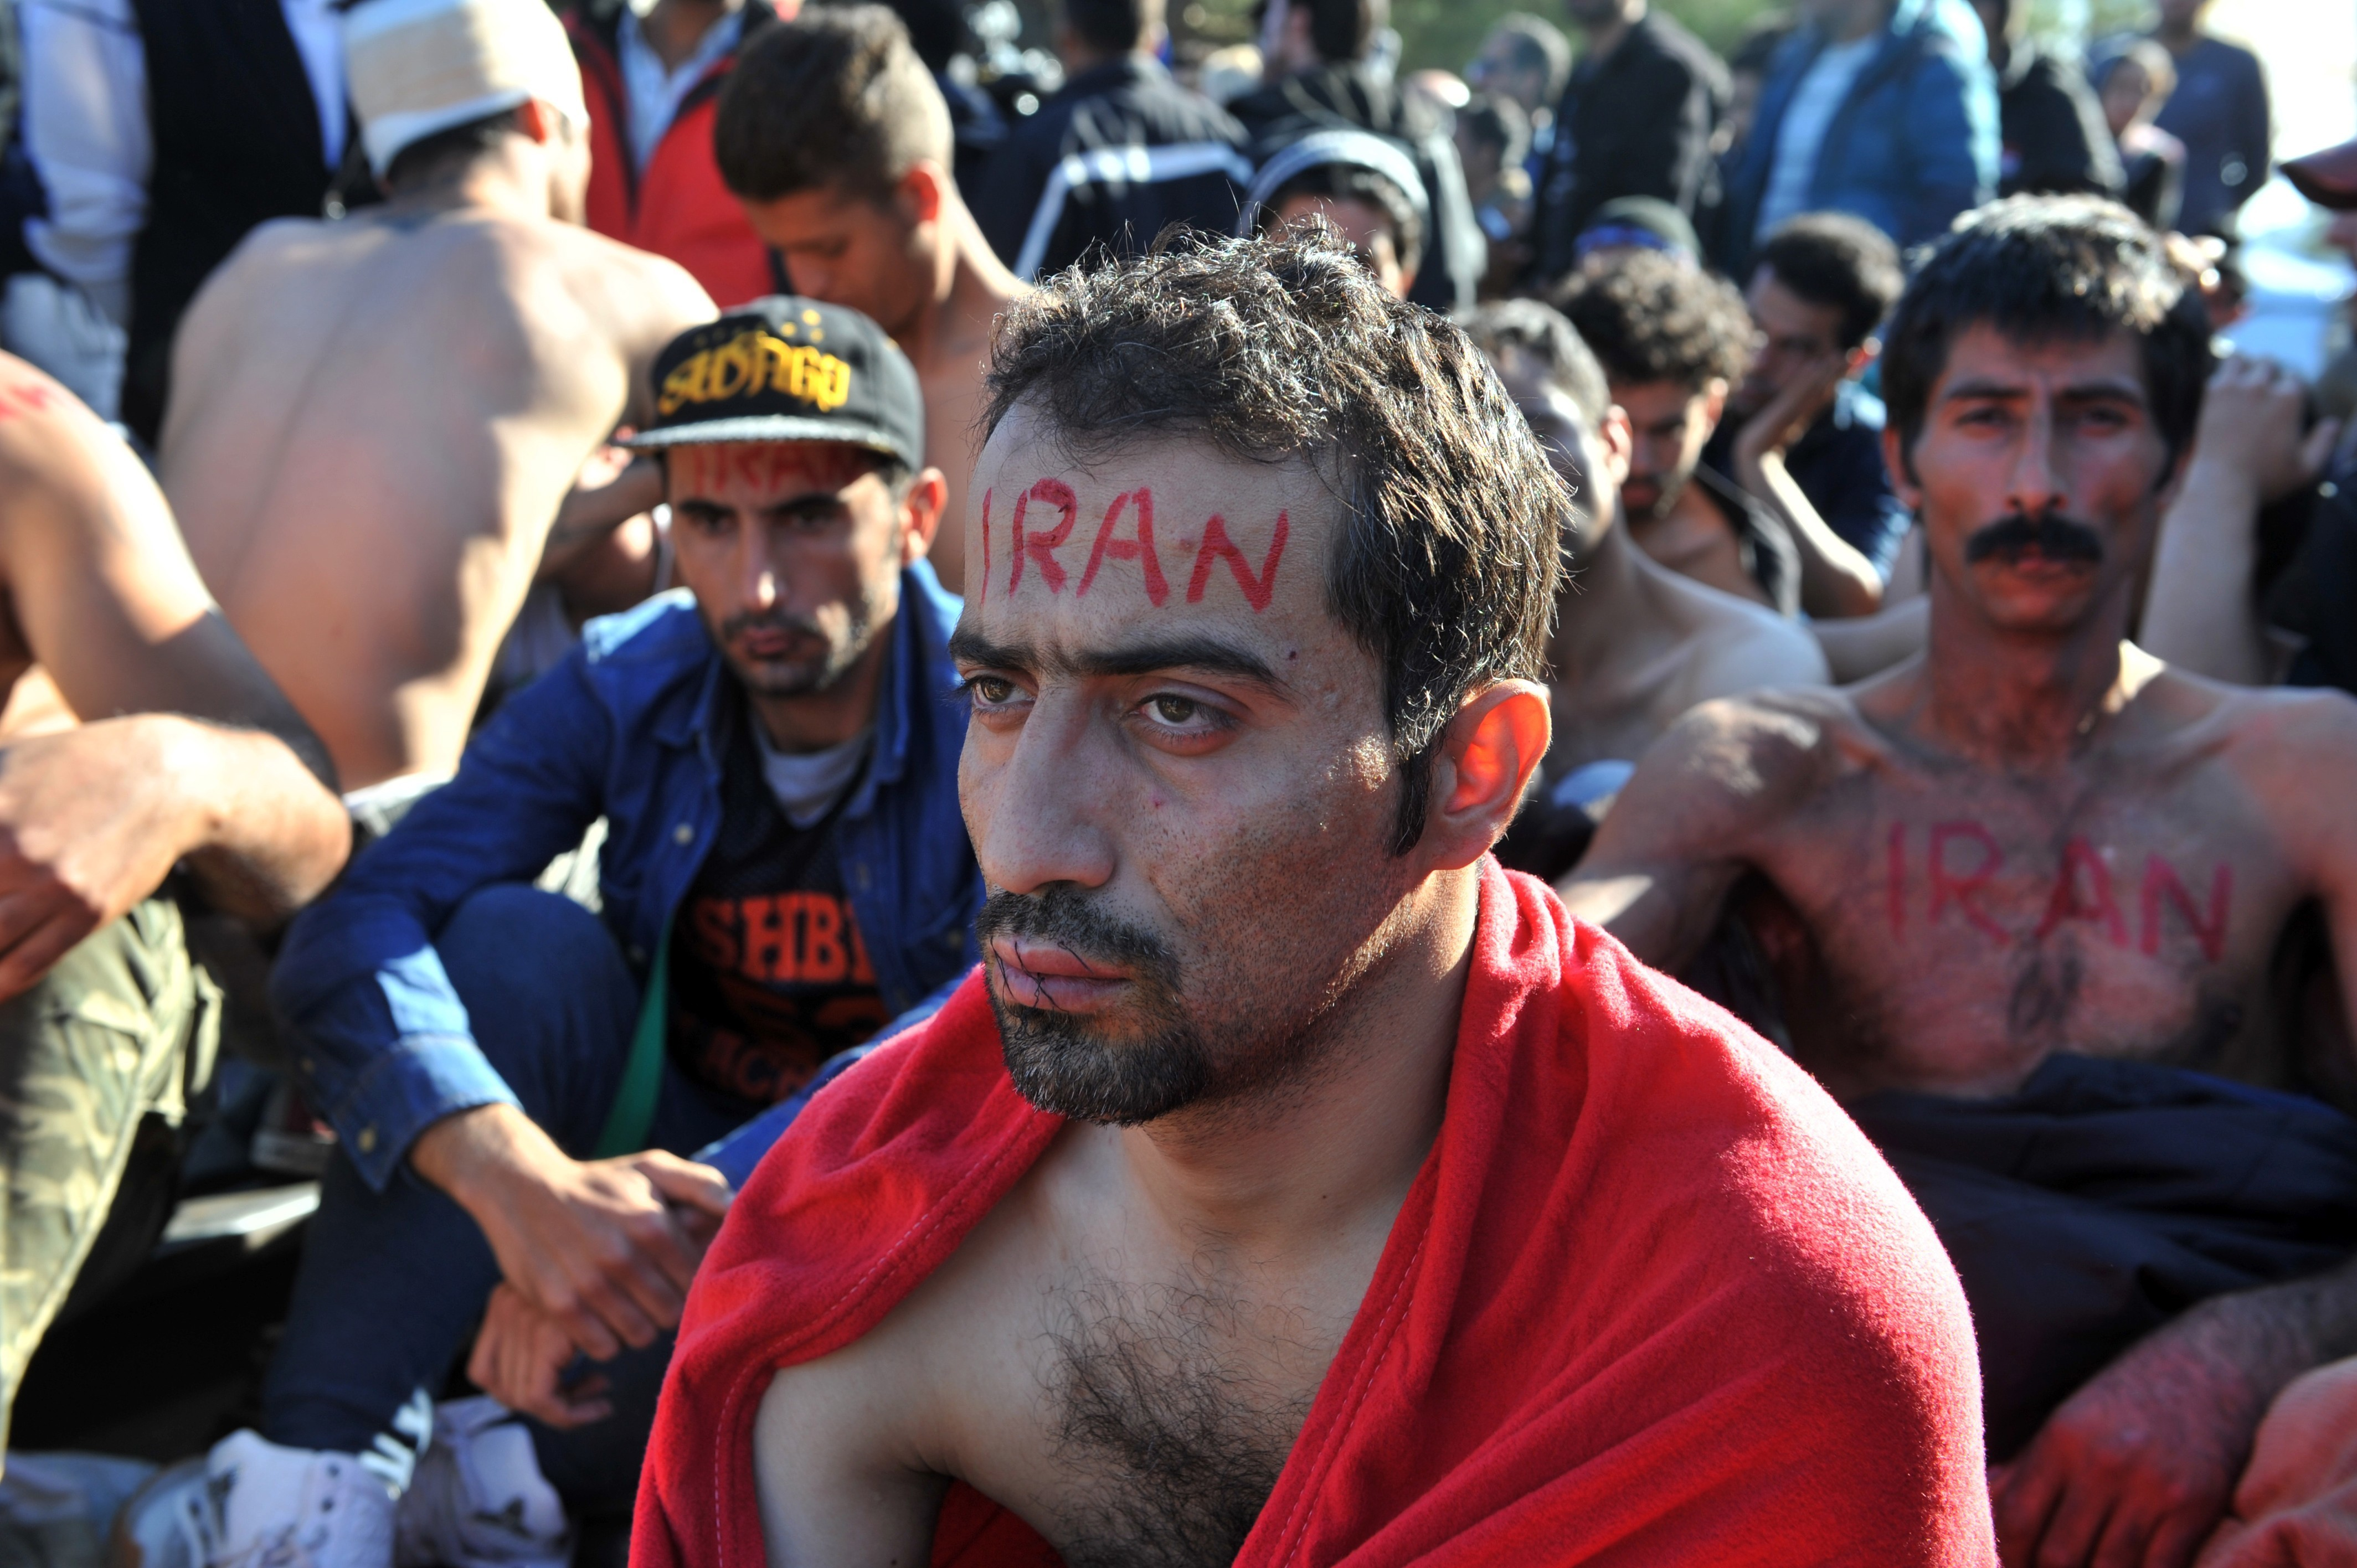 A man from Iran with his mouth sewn shut takes part in a demonstration with fellow migrants and refugees as they wait to cross the border of Greece and Macedonia (also referred as Former Yogaslavia Rebublic of Makedonia) near Idomeni on November 23, 2015. Serbia and Macedonia, which lie on the main migrant route to northern Europe, have begun restricting the entry of refugees to just those from certain countries, the UN refugee agency said. AFP PHOTO / SAKIS MITROLIDIS / AFP / SAKIS MITROLIDIS        (Photo credit should read SAKIS MITROLIDIS/AFP/Getty Images)